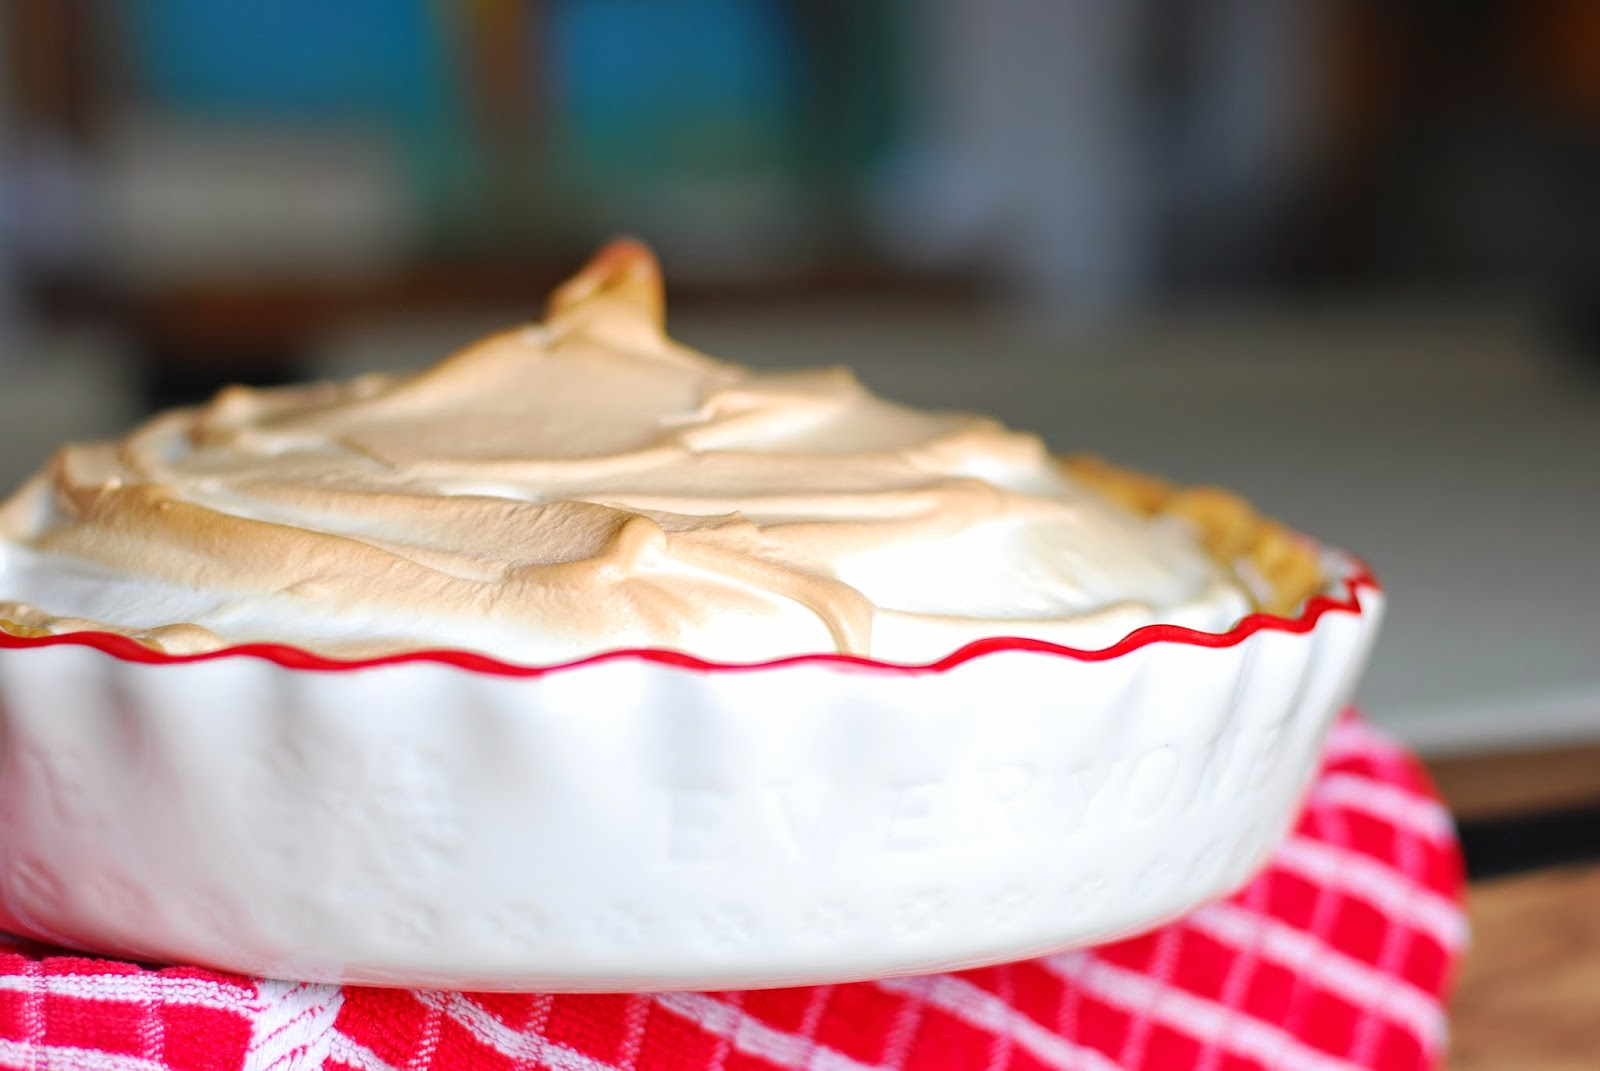 how to say lemon meringue pie